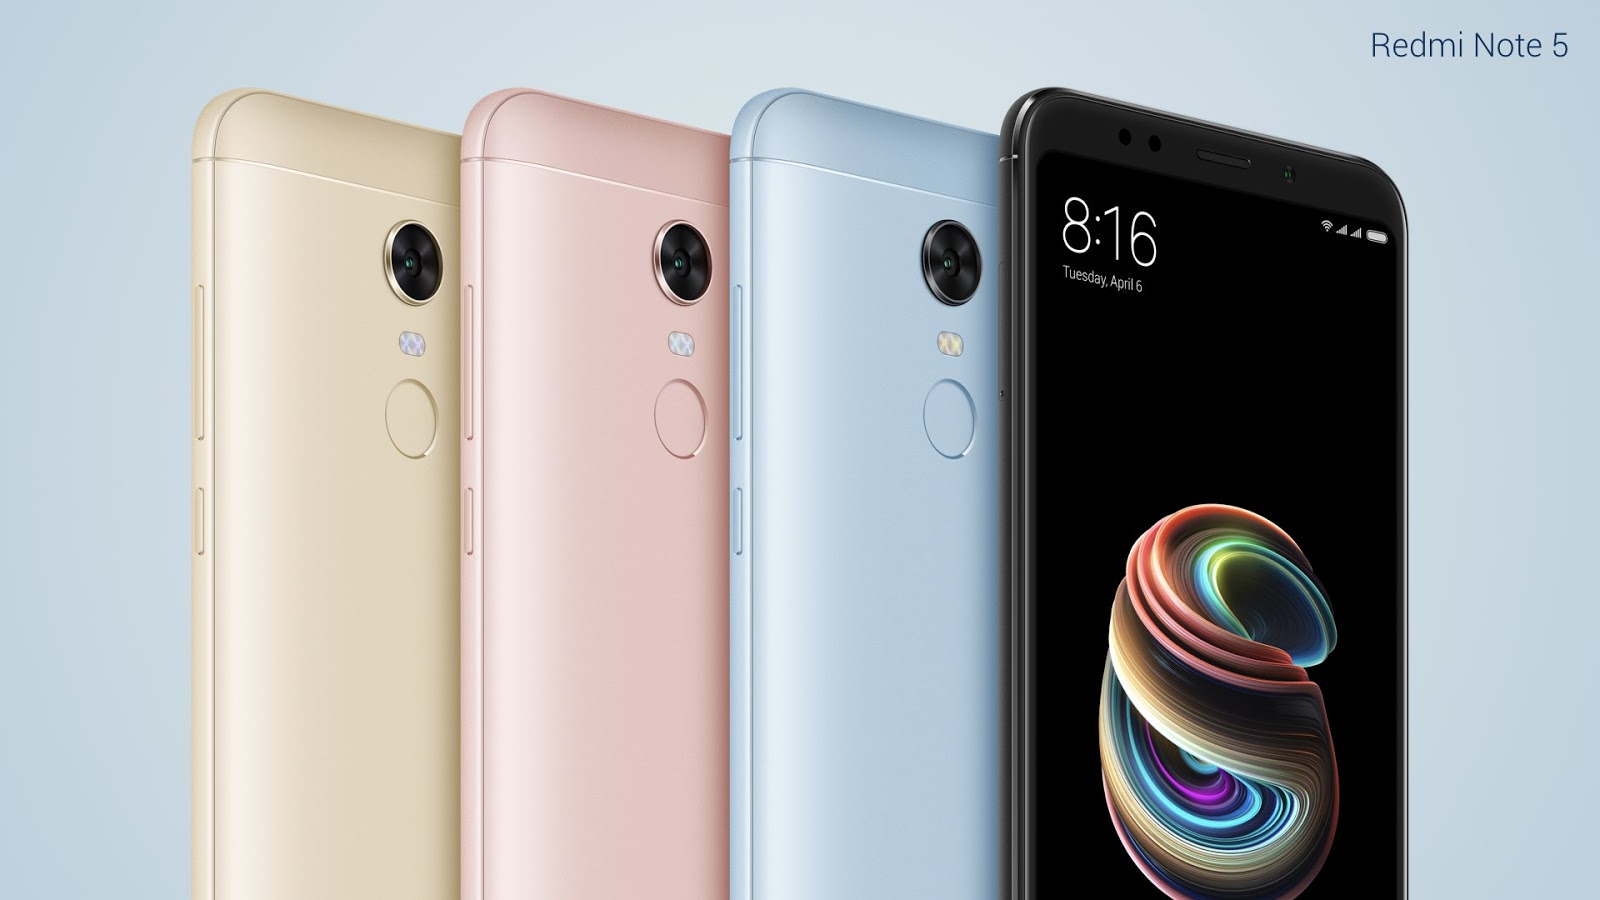 Xiaomi Redmi Note 5 With 18 9 Display And Front Led Flash: Xiaomi Announces Redmi Note 5 & Redmi Note 5 Pro With Full